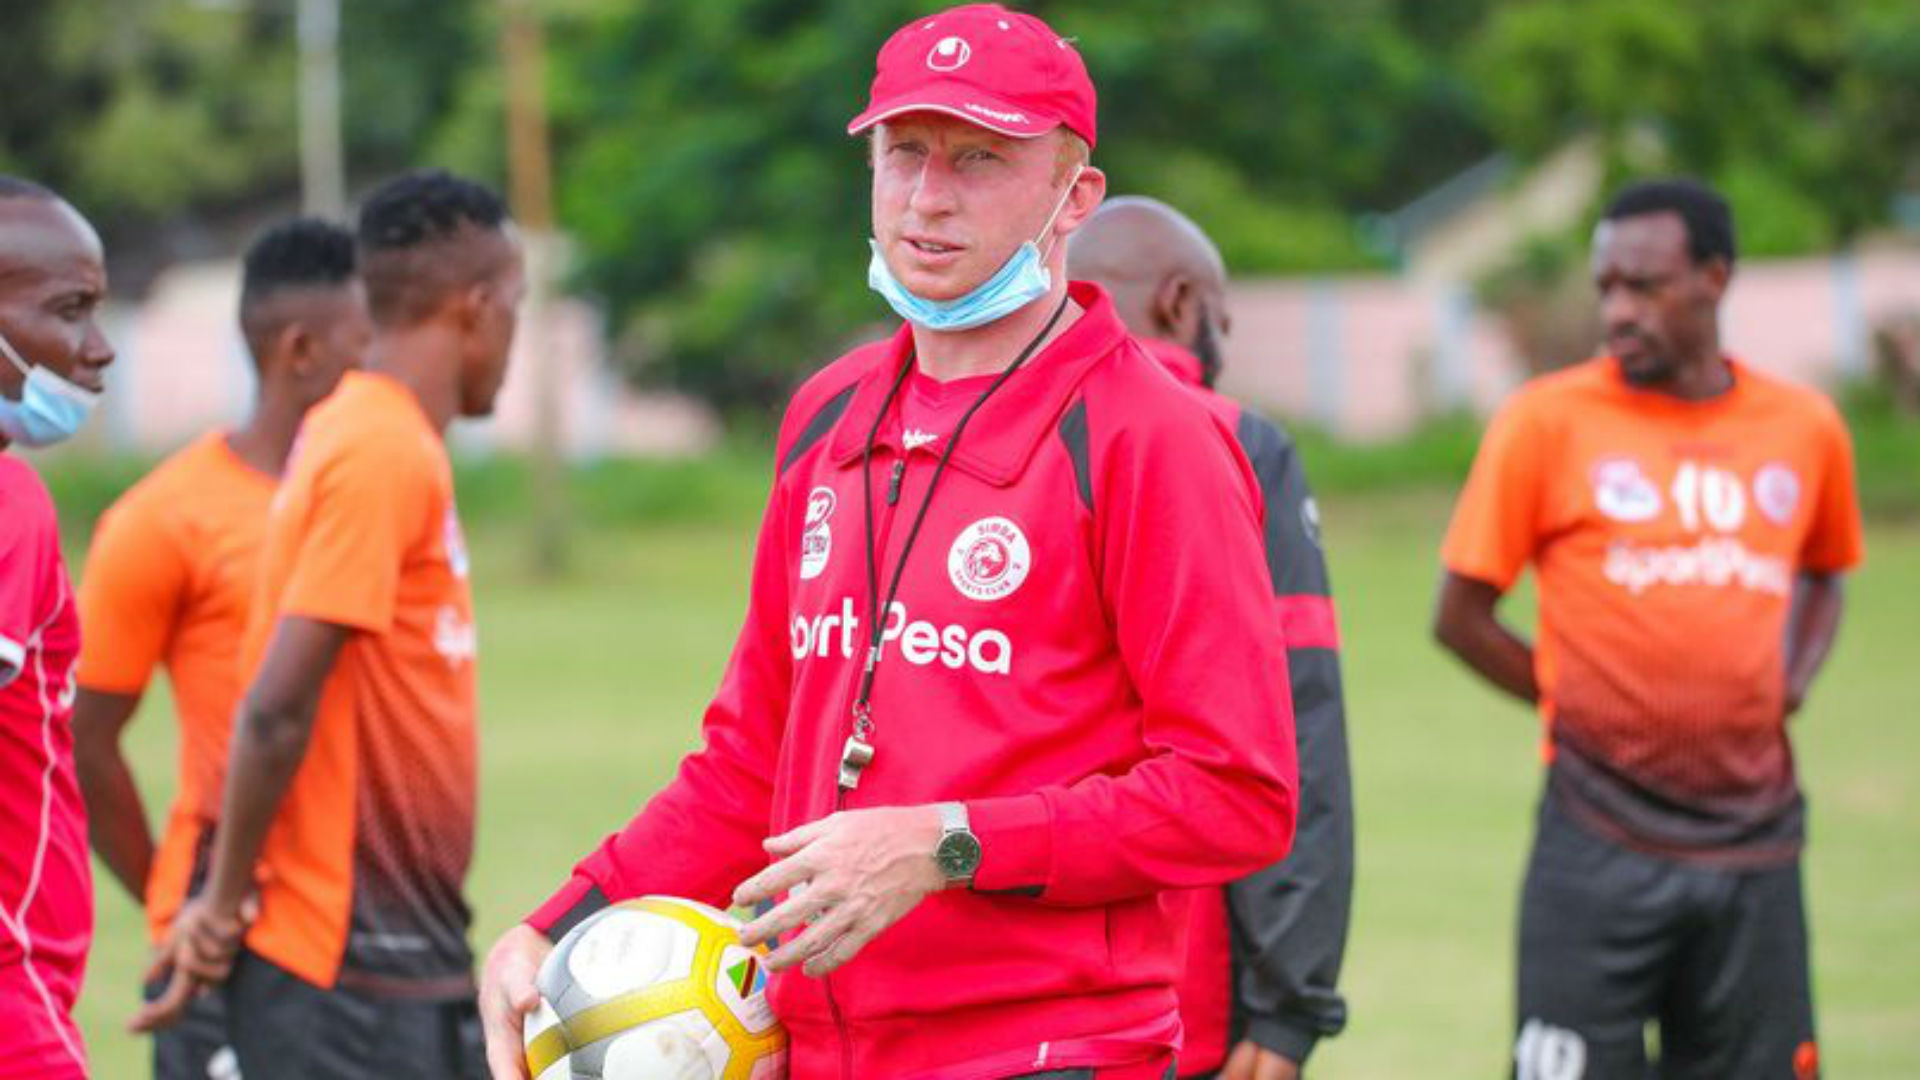 Caf Champions League: Simba SC need to be cautious against FC Platinum – Vandenbroeck